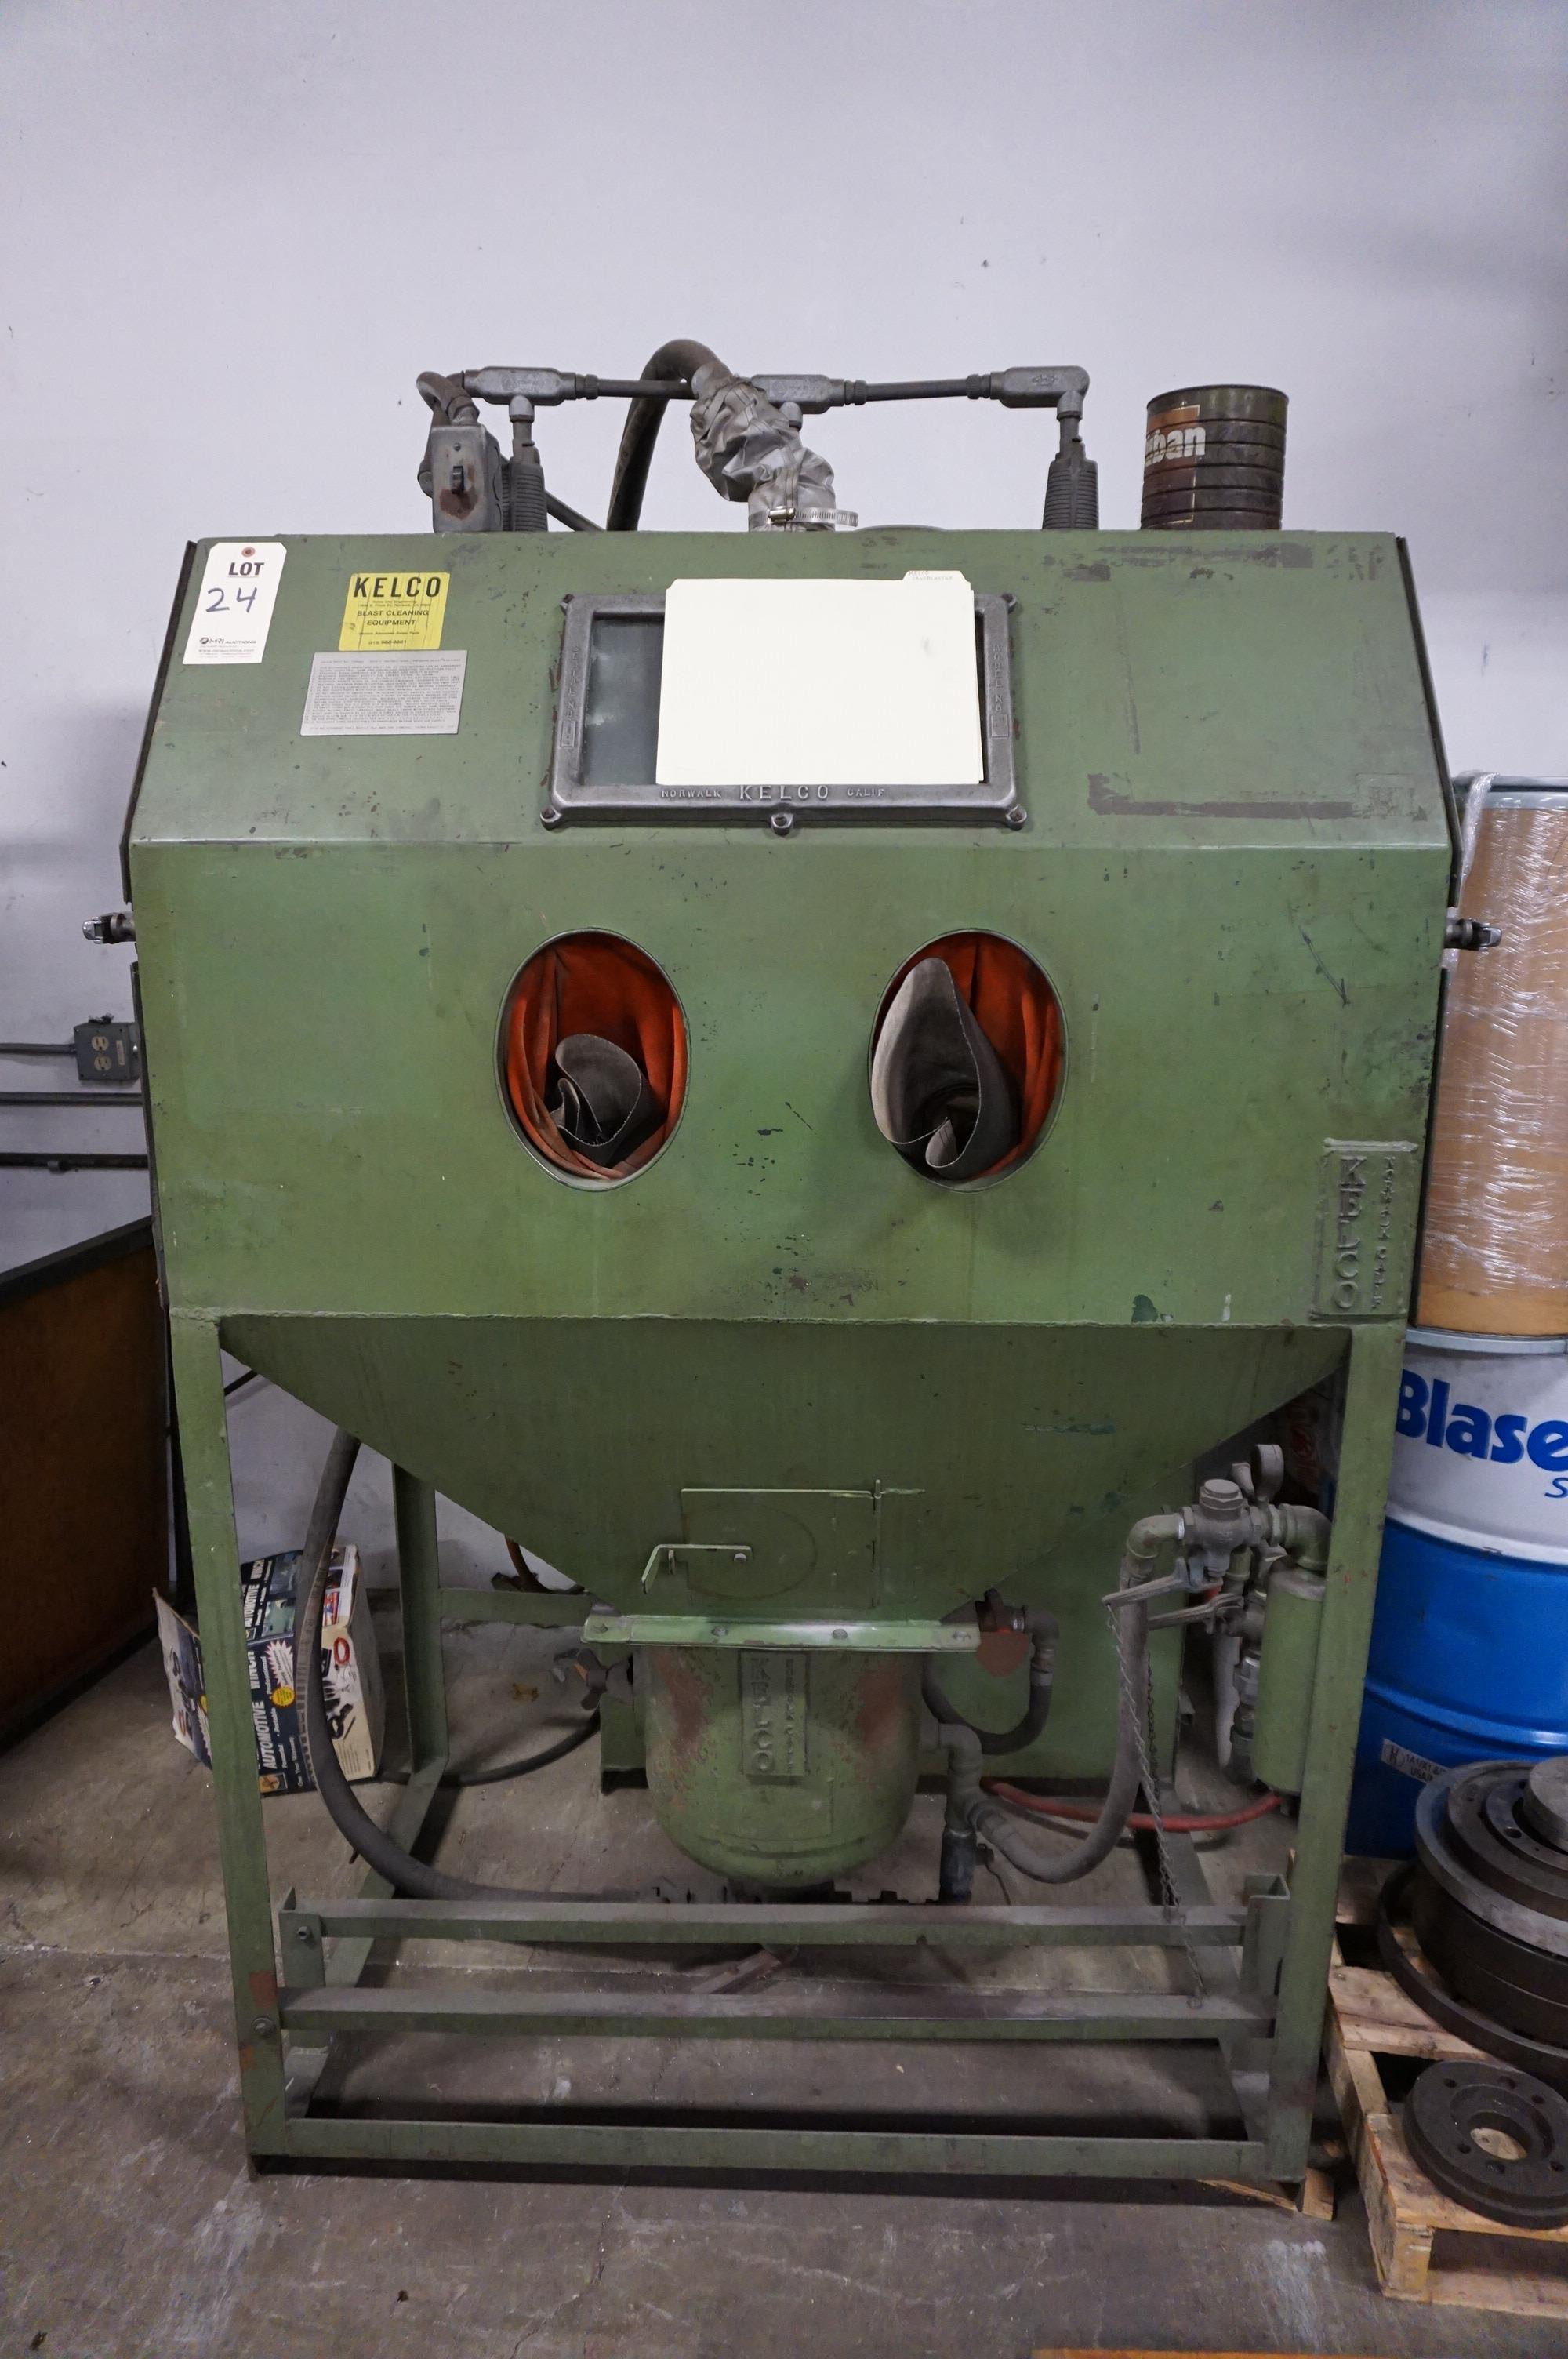 KELCO SAND BLASTING CABINET, MODEL NO CH48C, S/N C3443, WITH CATALOG